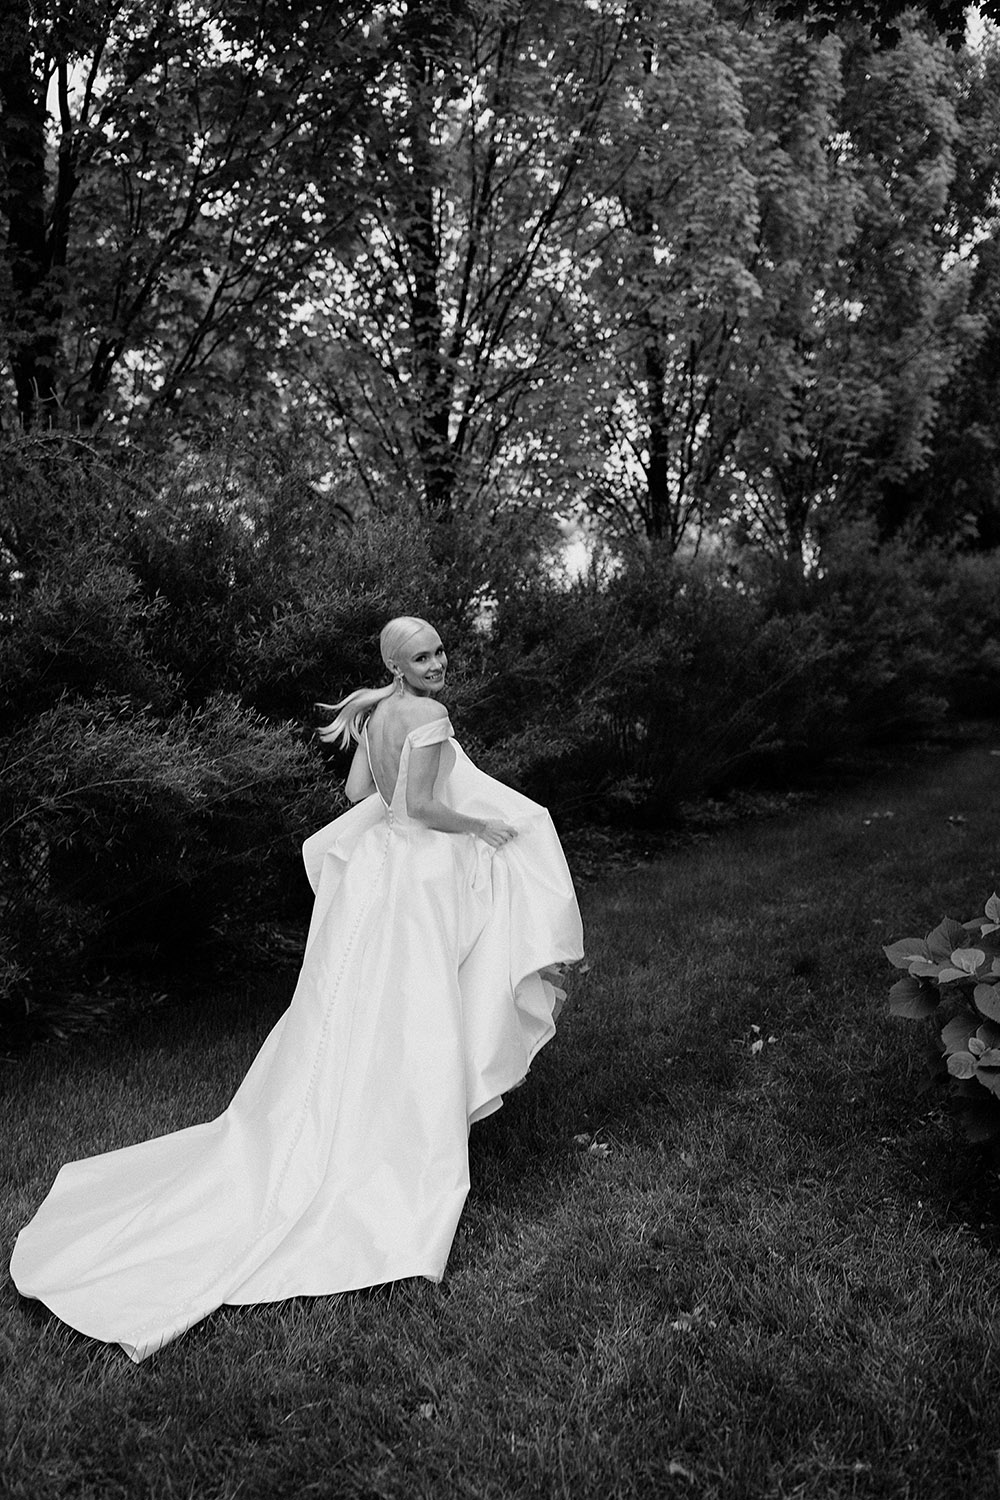 Bride running through gardens with modern wedding dress